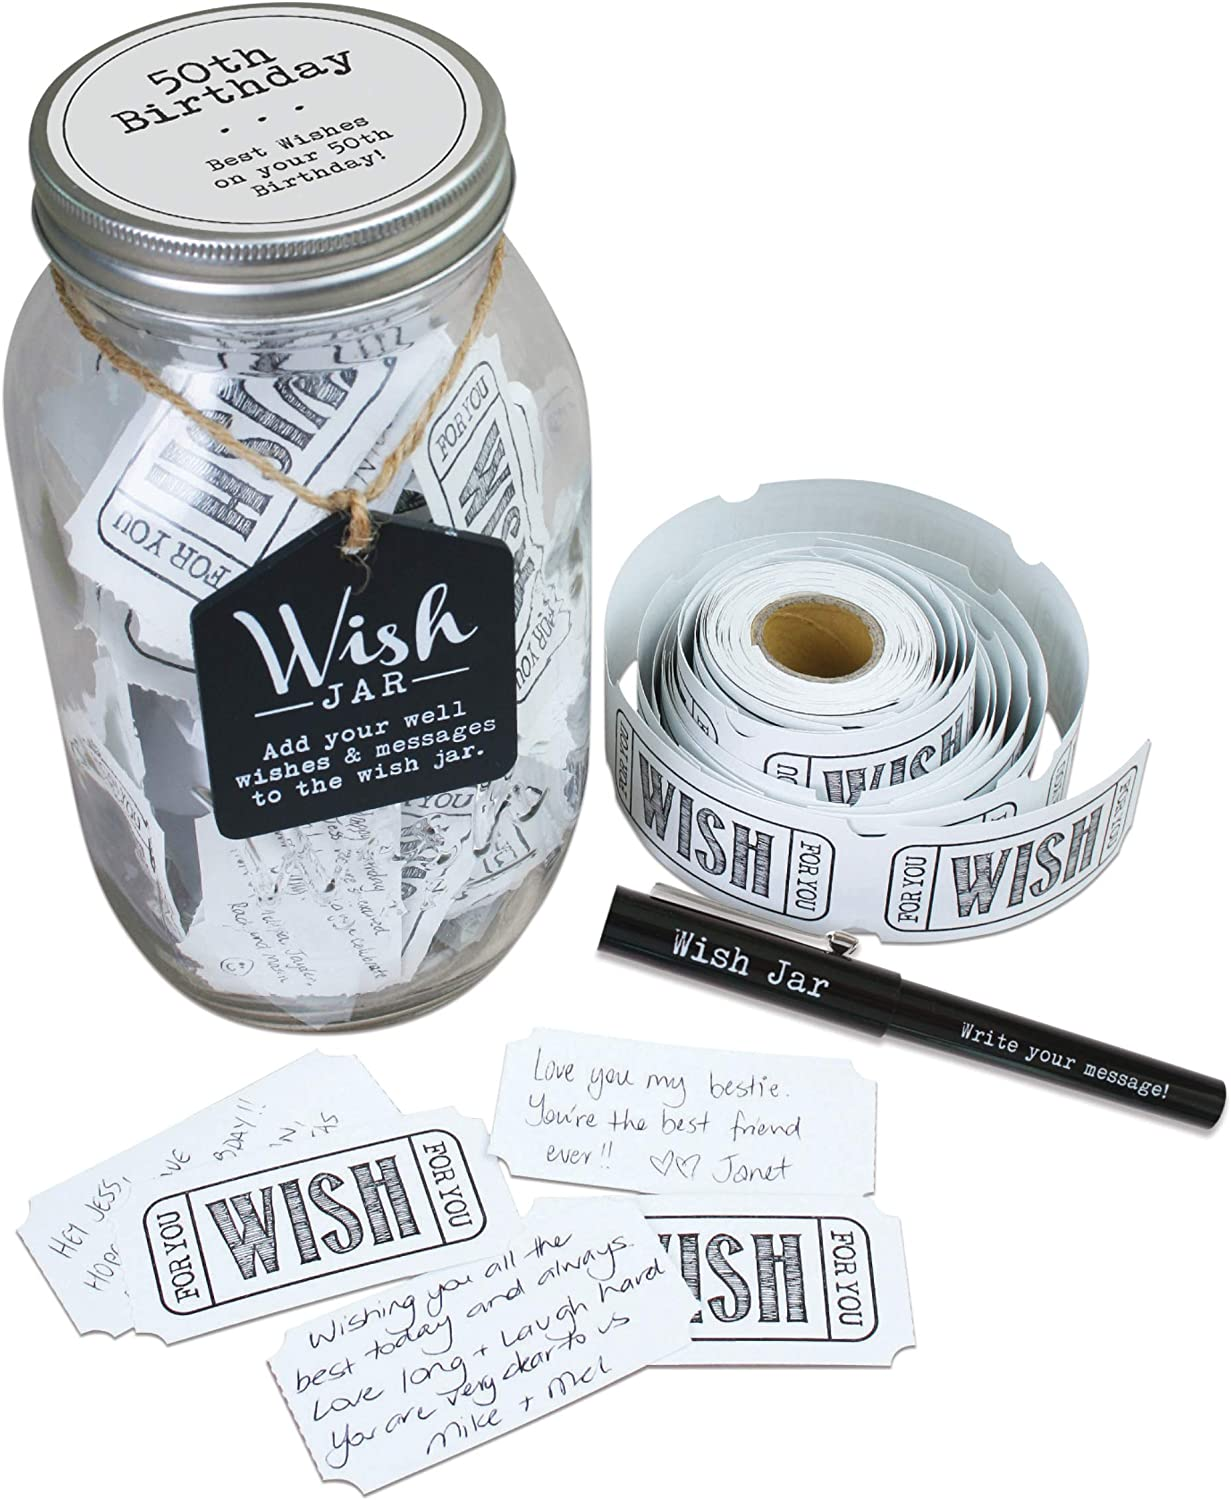 Top Shelf Mesa 4 years warranty Mall 50th Birthday Wish Jar With Pen Tickets 100 and Deco